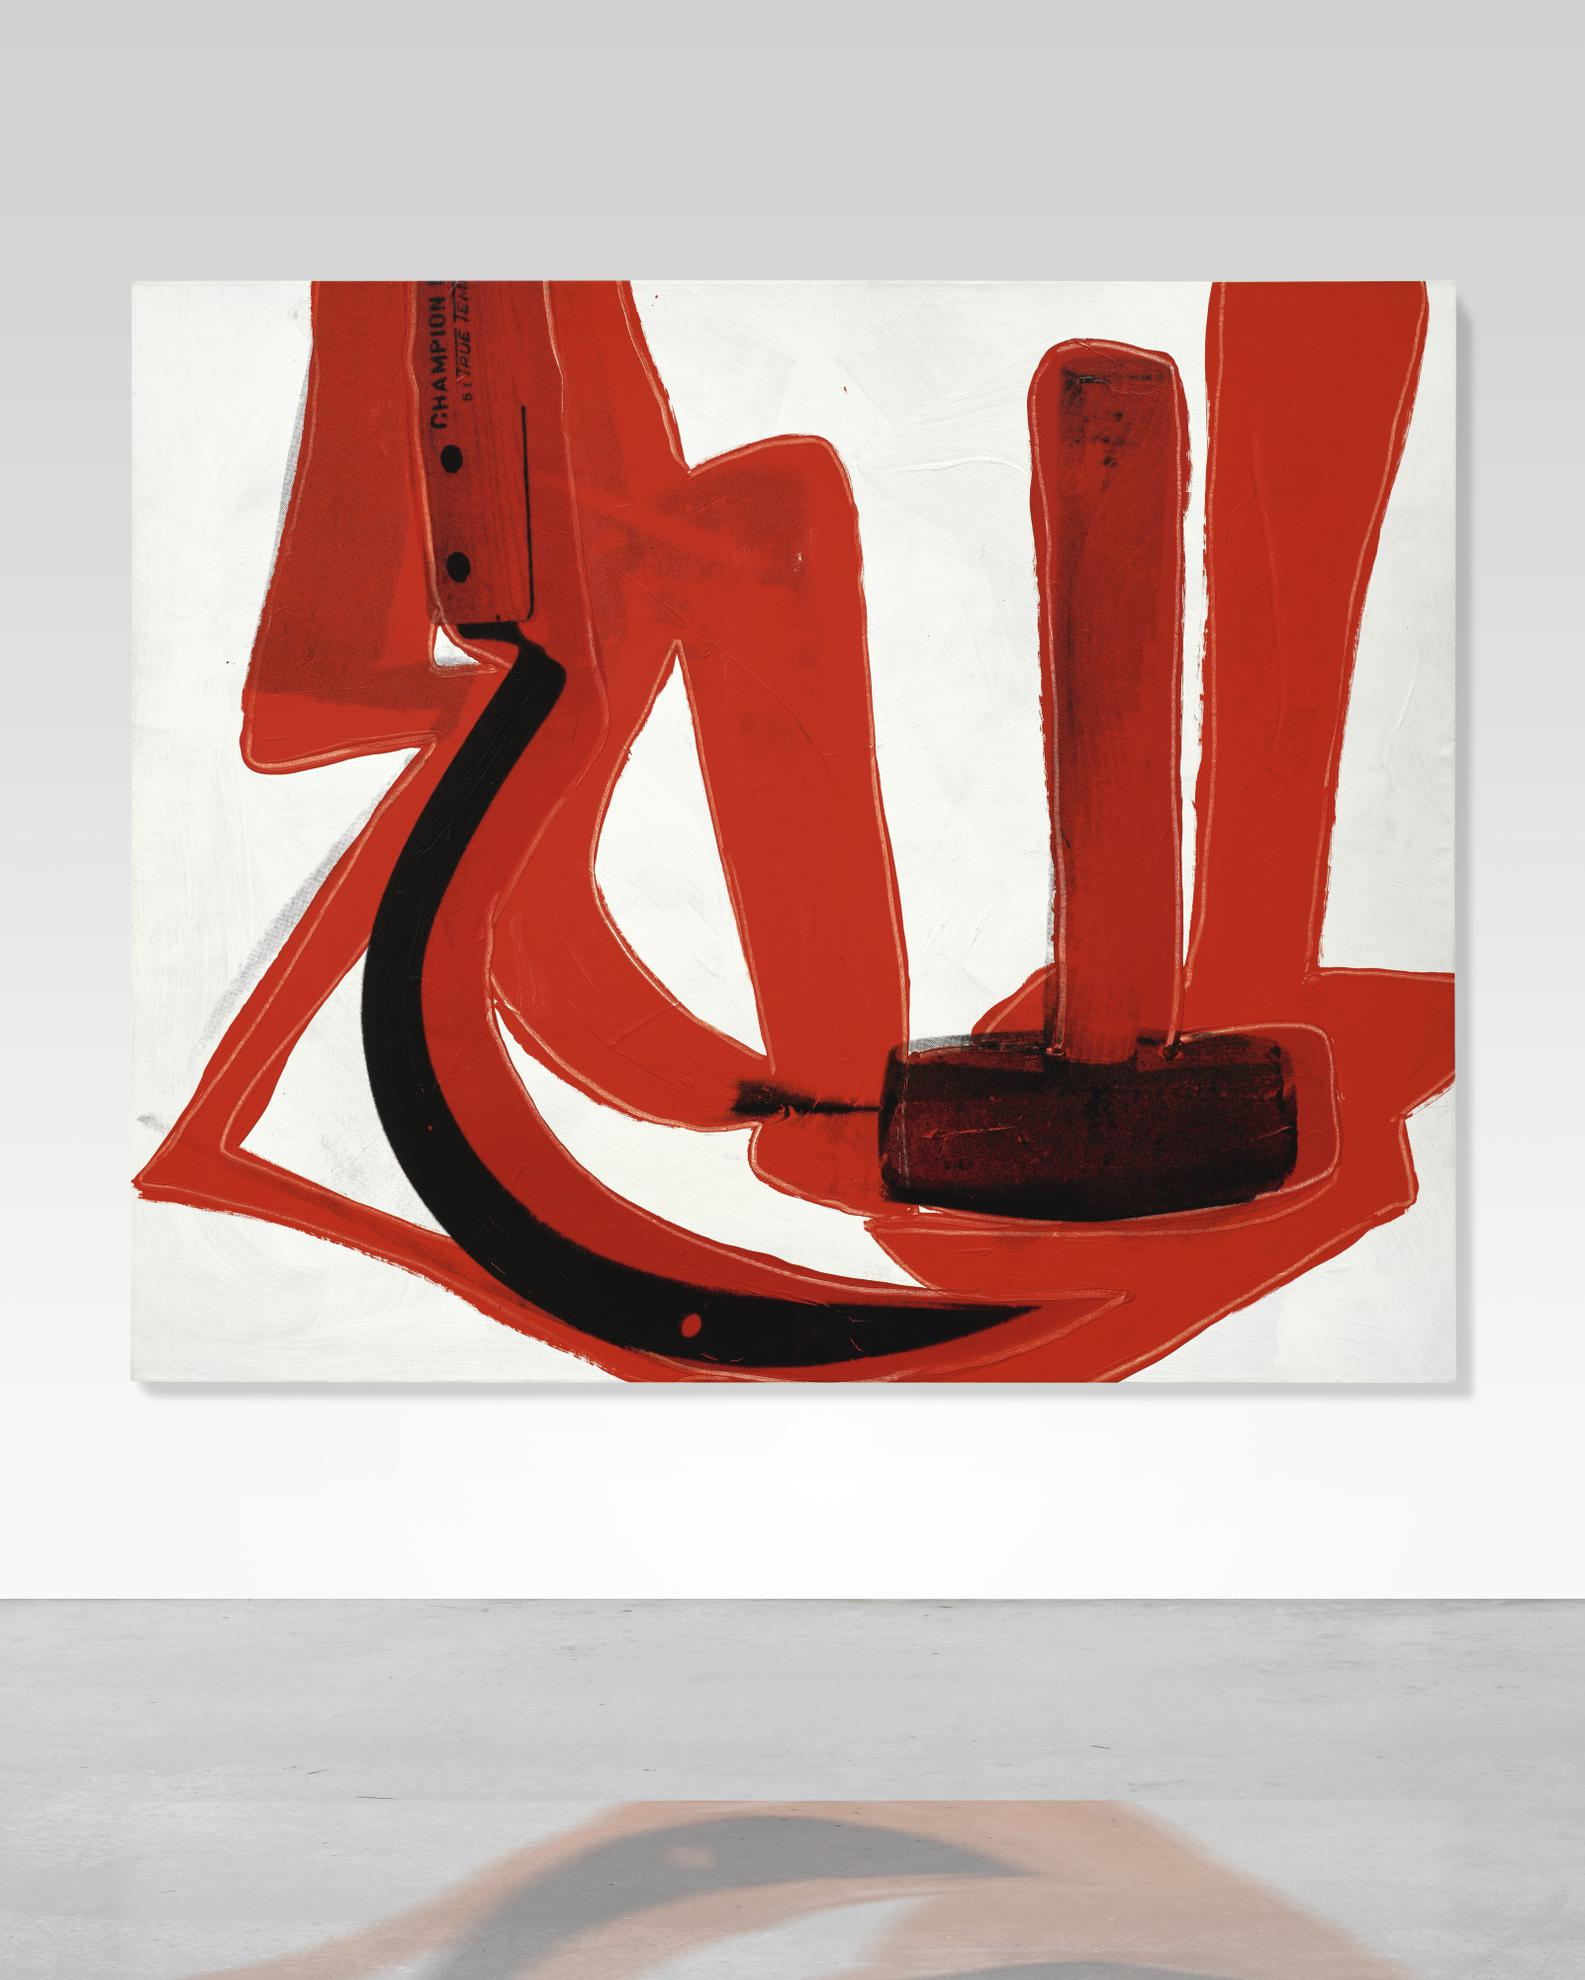 Andy Warhol-Hammer And Sickle-1976